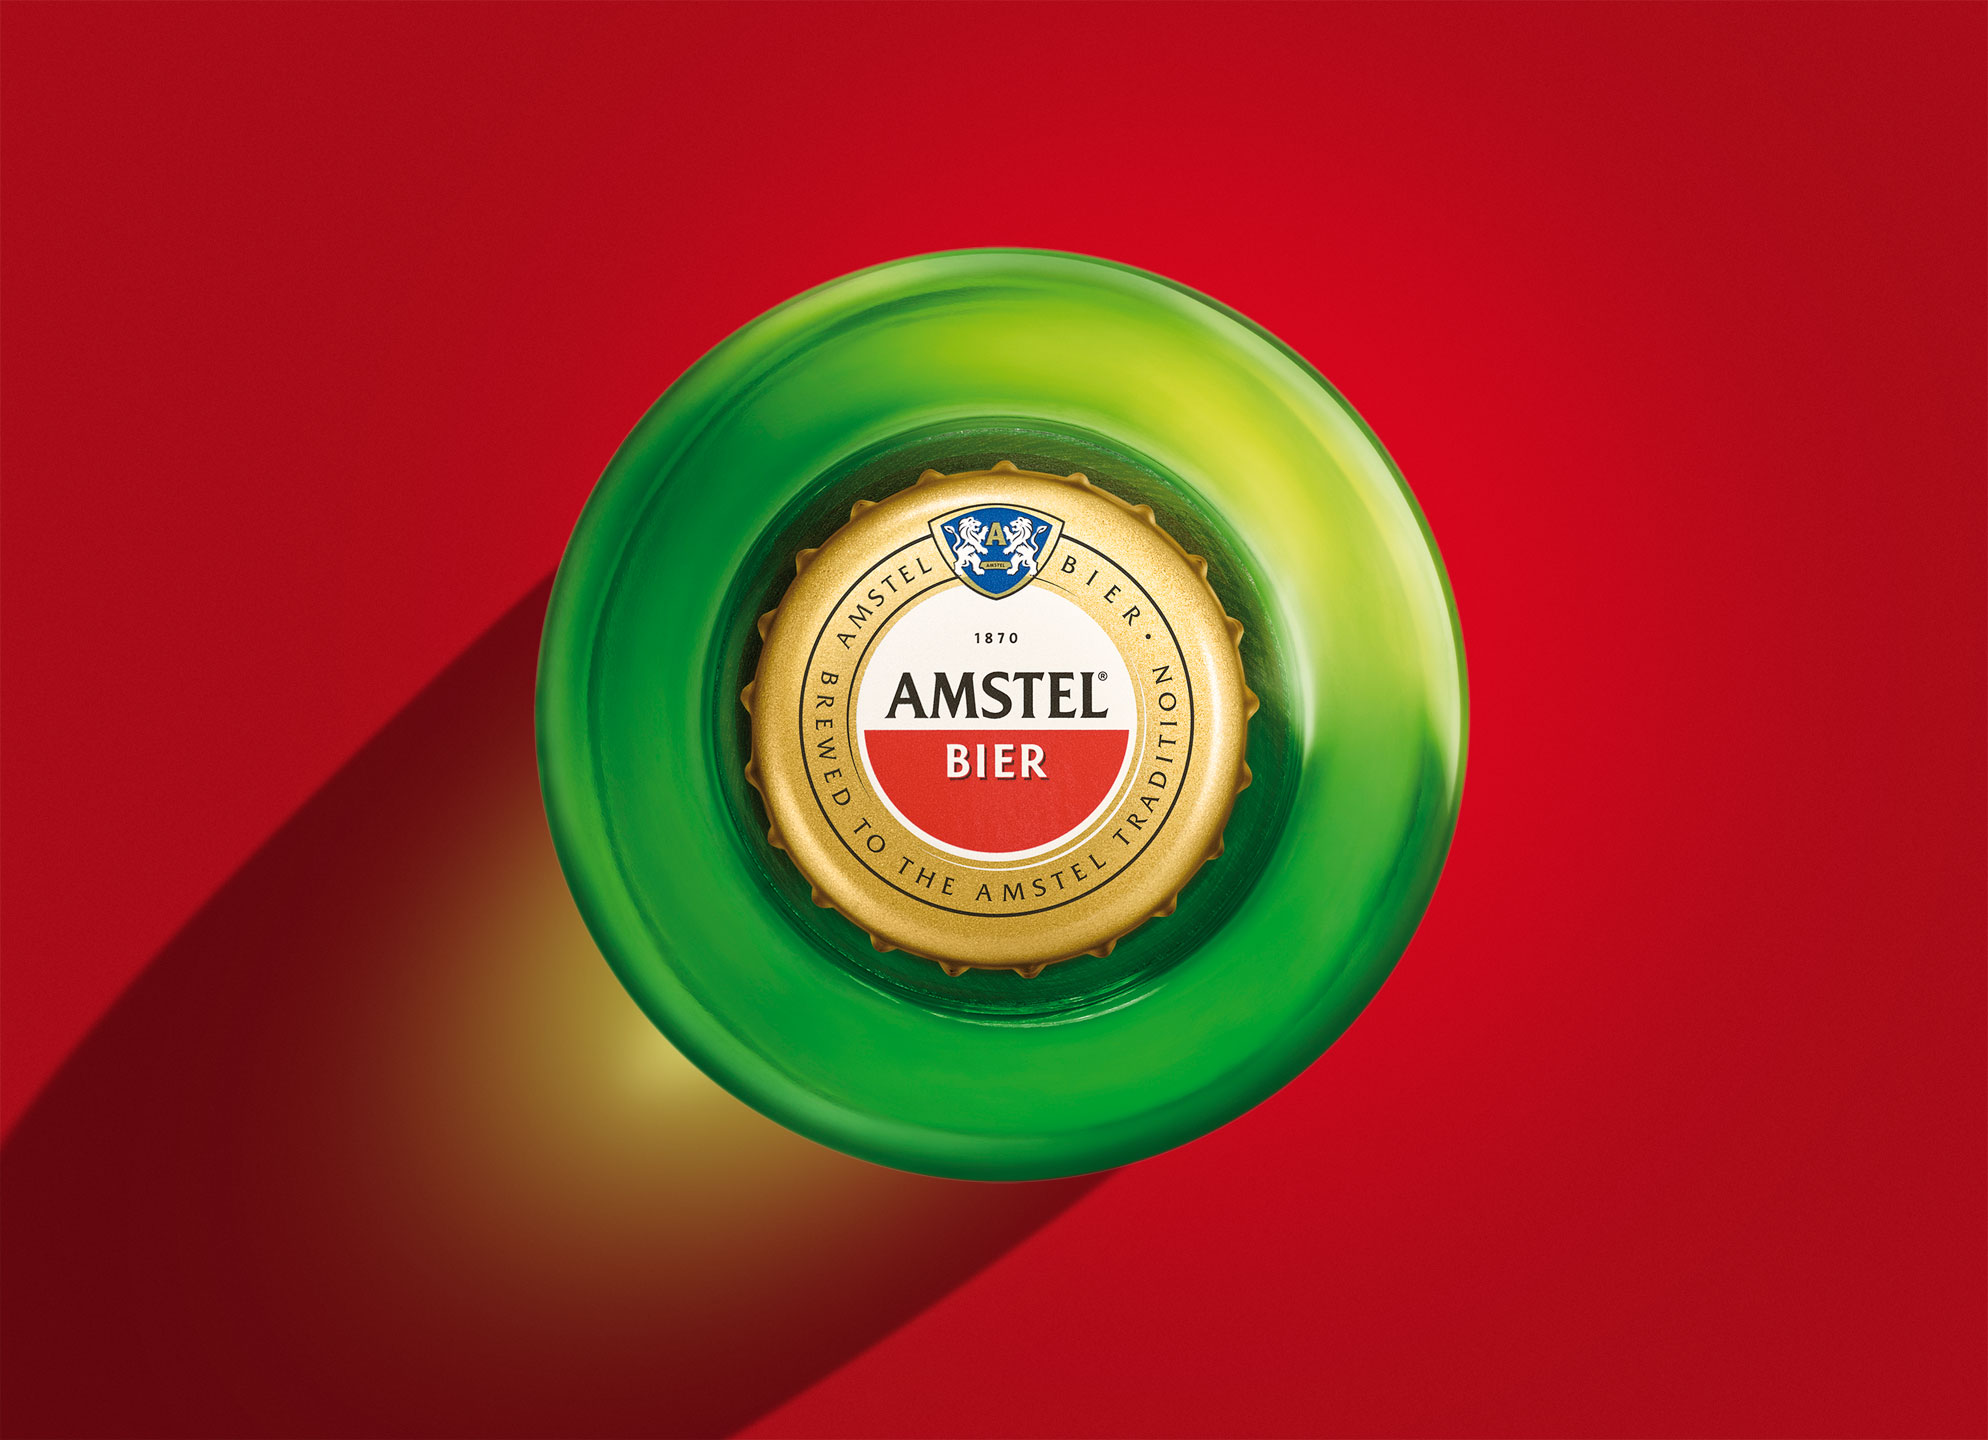 t108_Amstel_Top_Bottle_WingChan